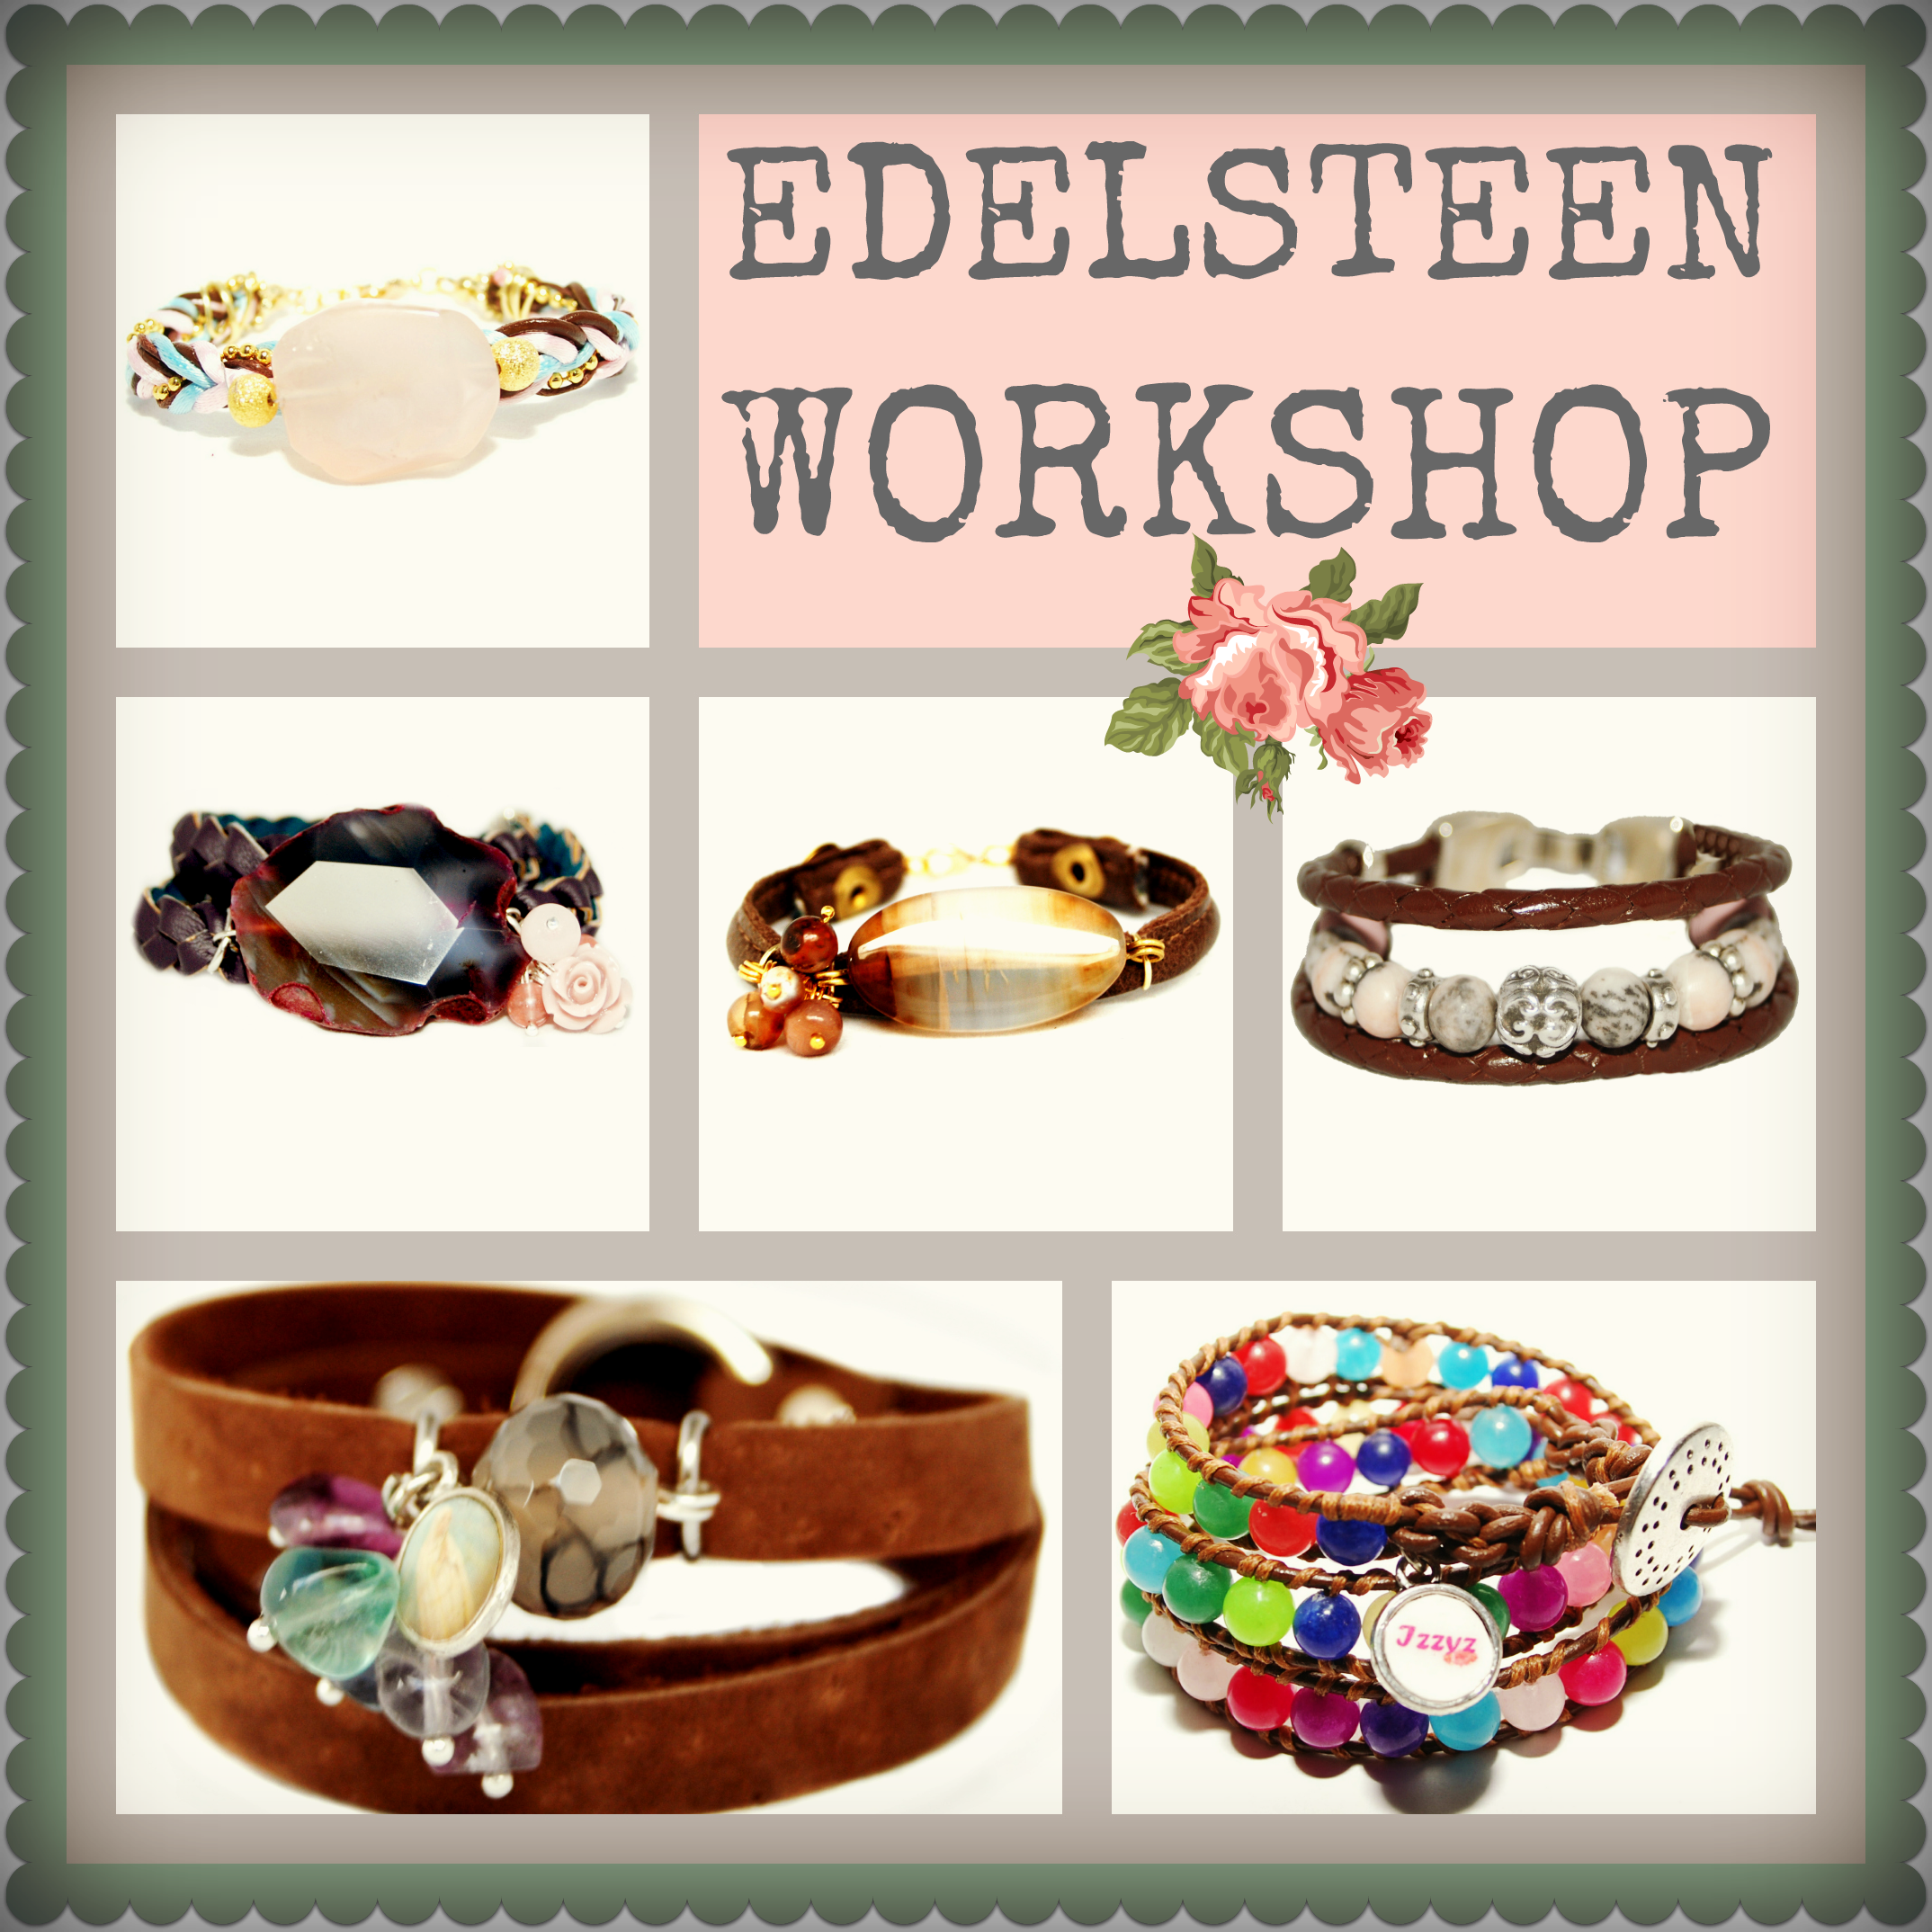 Edelsteen workshop